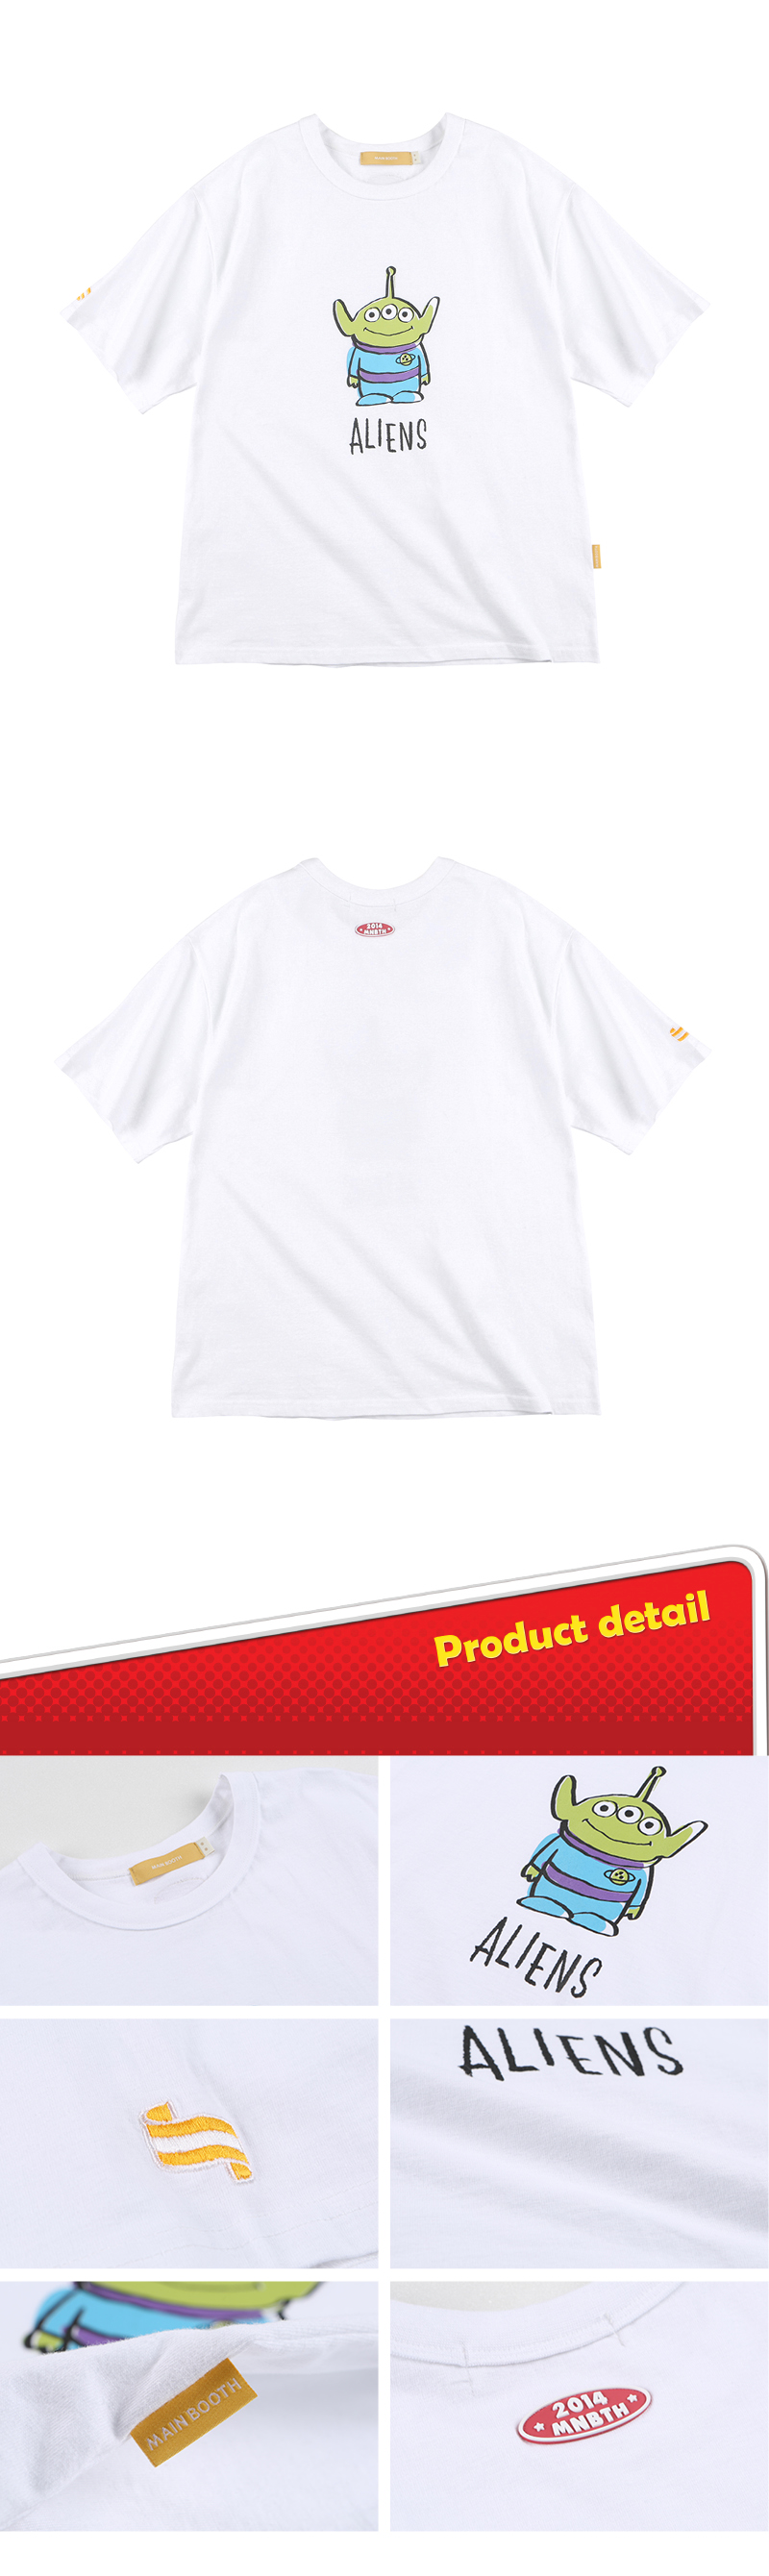 메인부스(MAINBOOTH) Toy Story T-shirt(ALIEN WHITE)